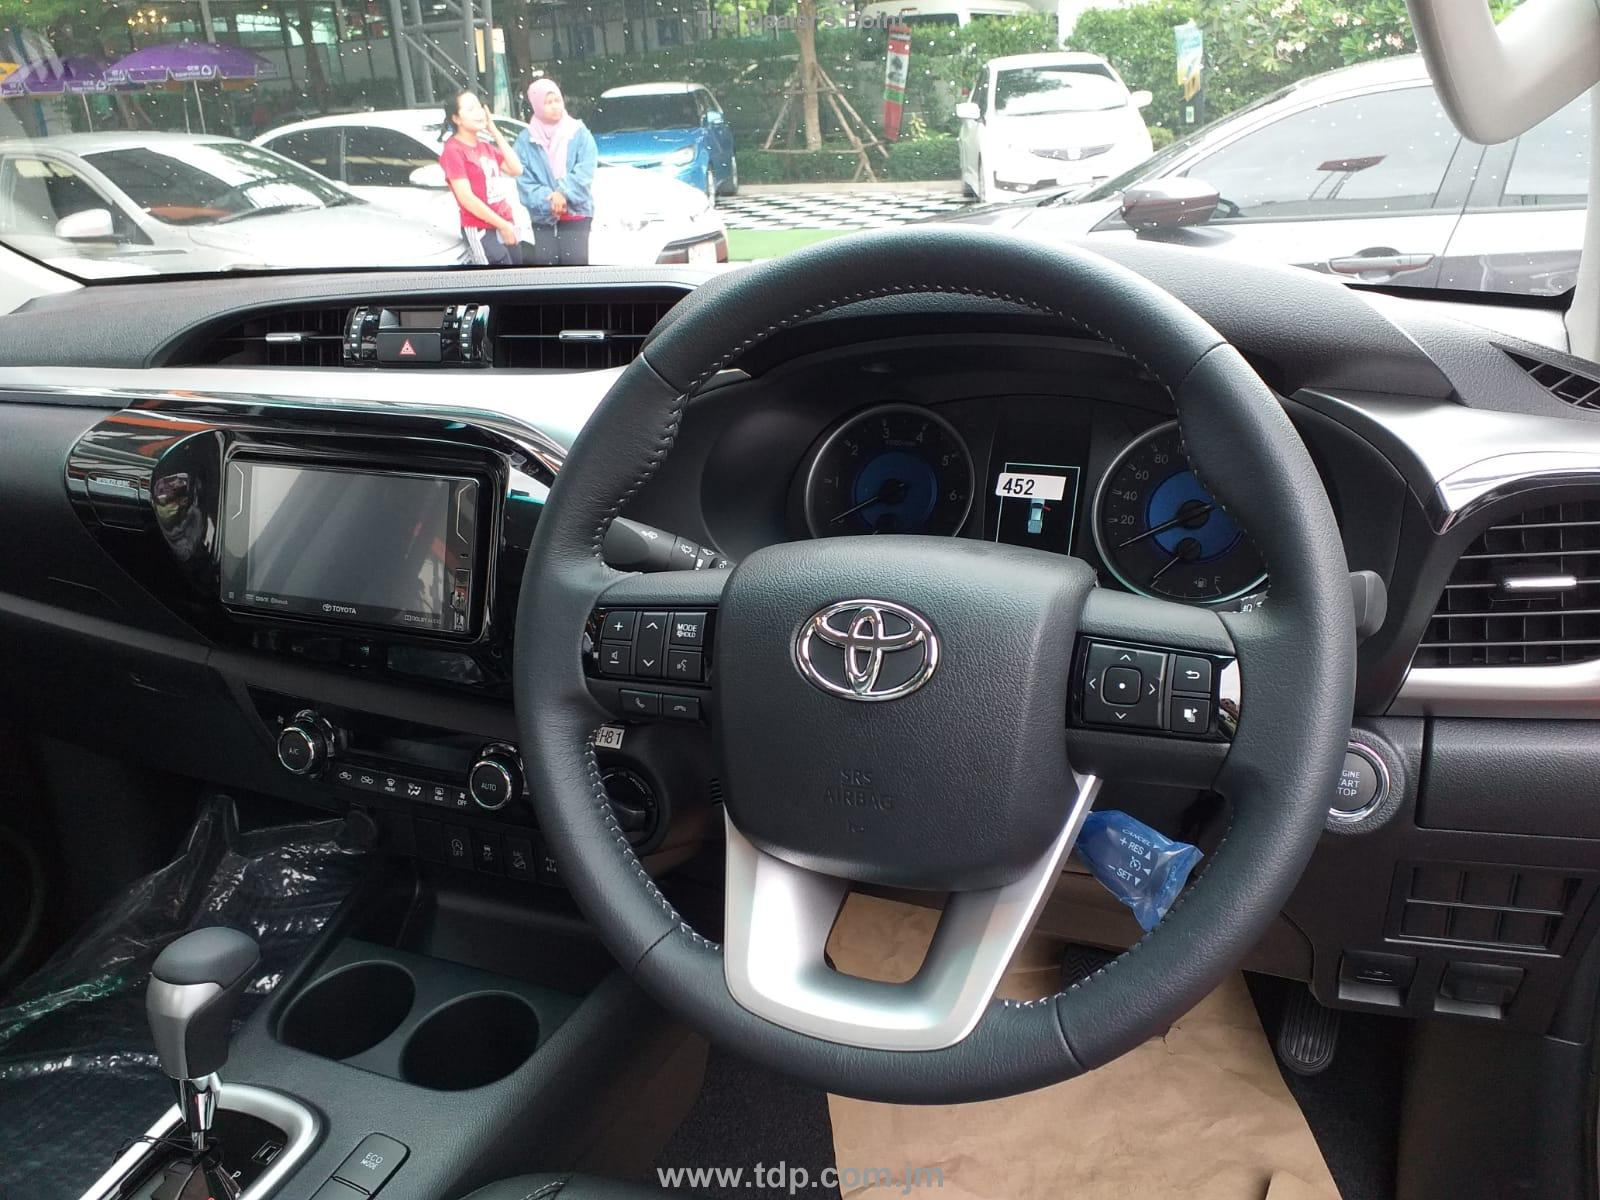 TOYOTA HILUX PICK UP 2019 Image 5